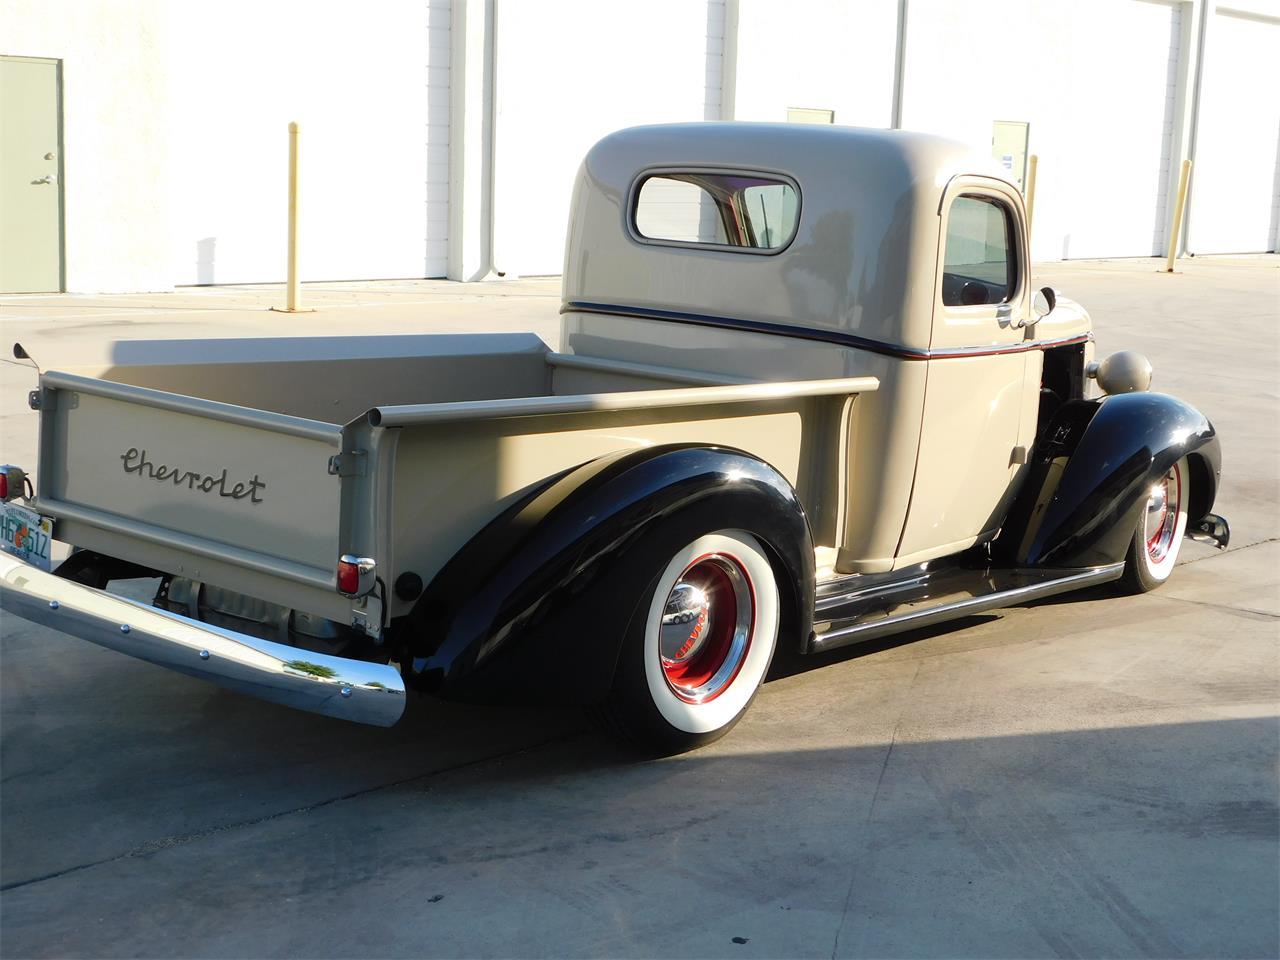 Large Picture of 1940 Chevrolet C10 located in Florida - $46,000.00 - QIBD